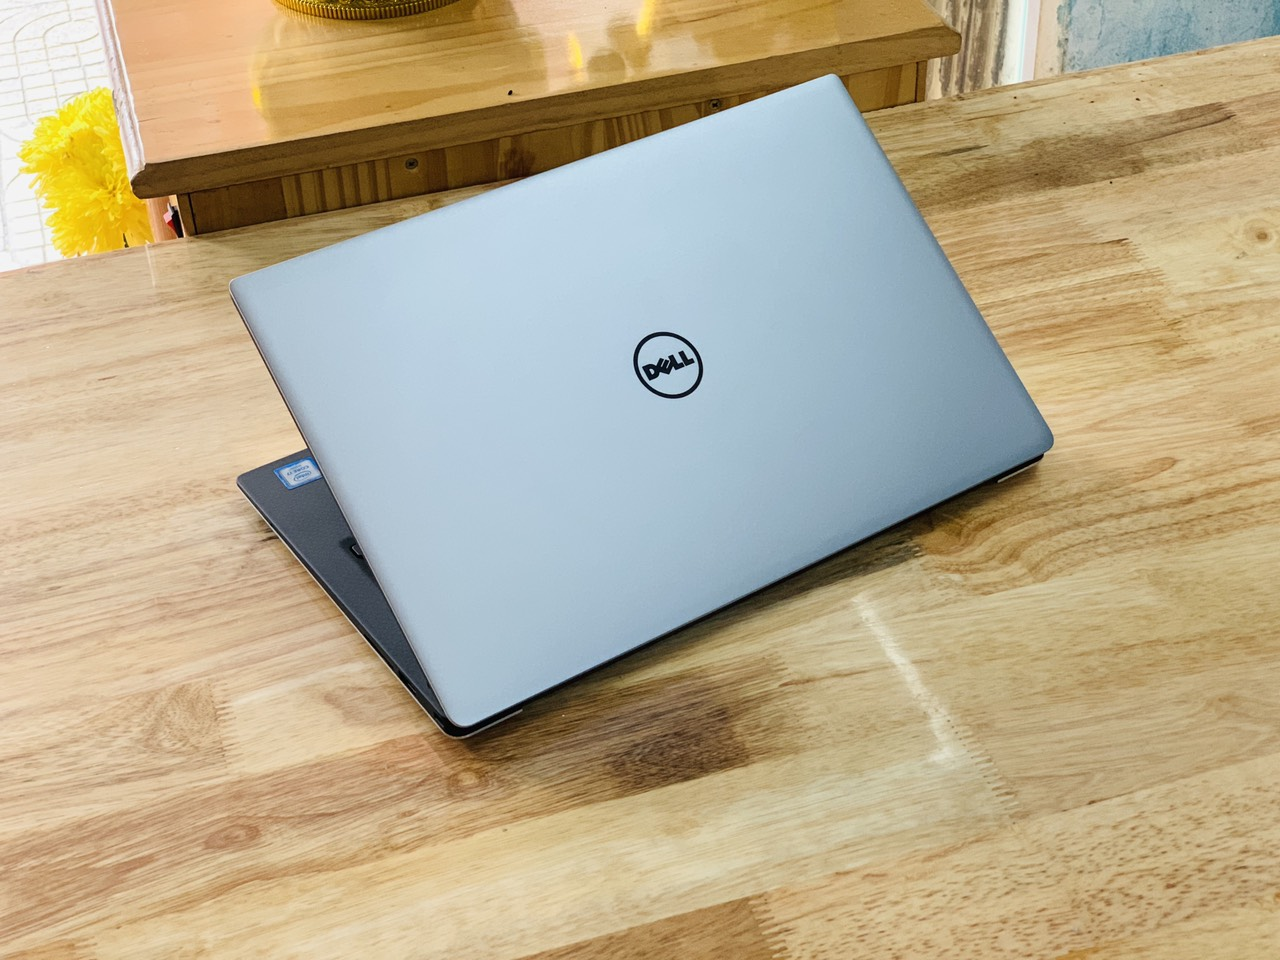 Dell XPS 13-9350 i7-6560U Ram 16GB SSD 256GB